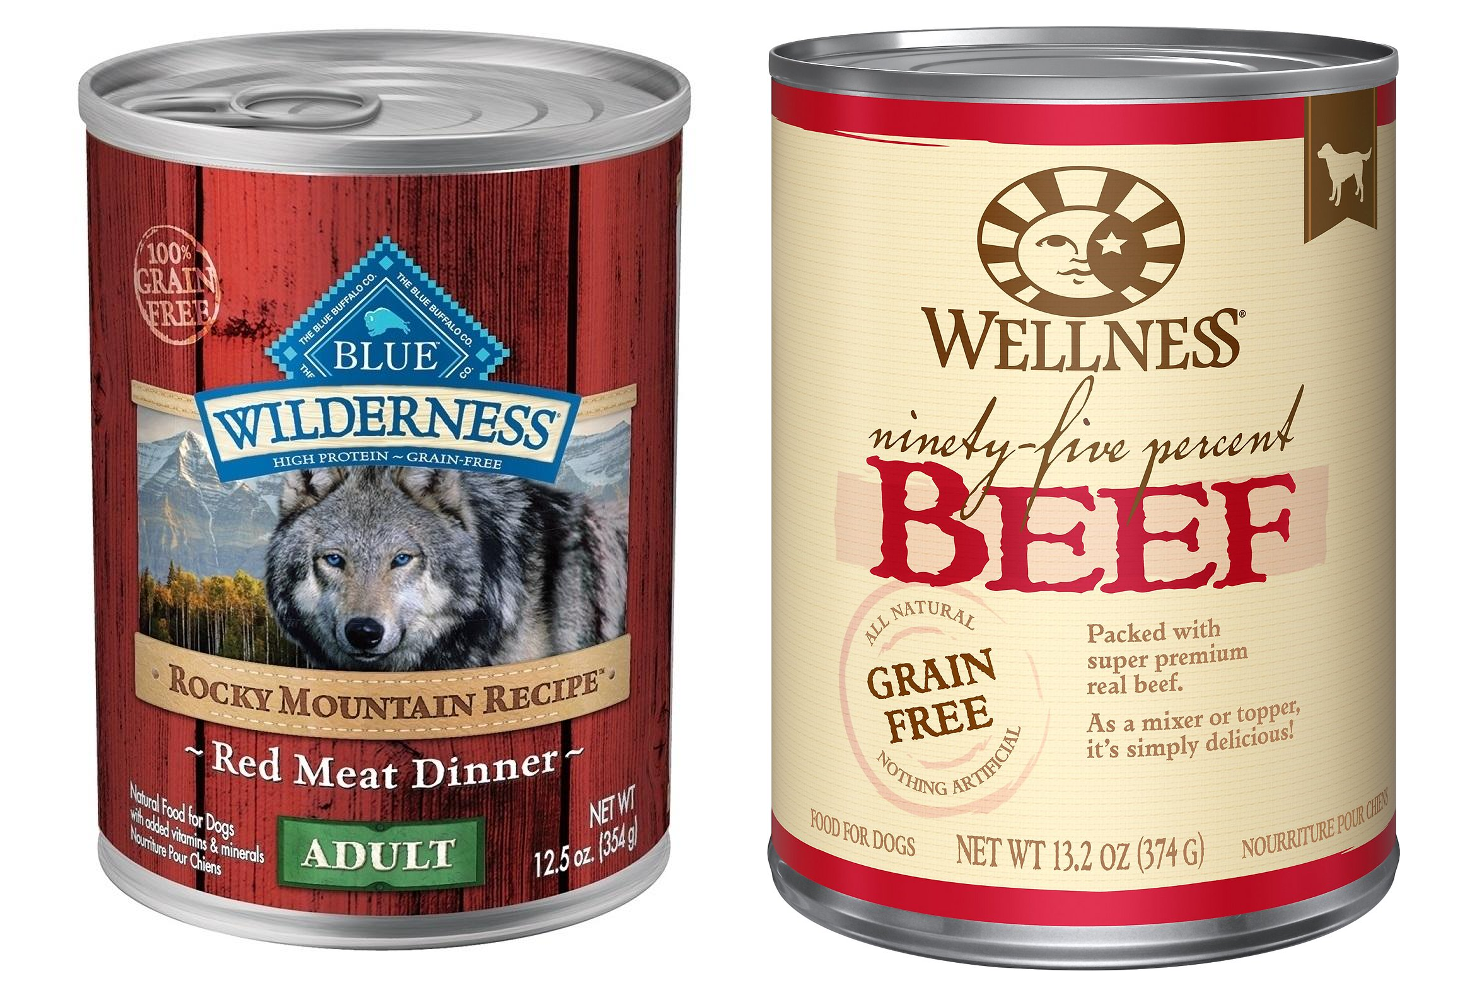 Blue Buffalo Wellness Announce Pet Food Recalls For Elevated